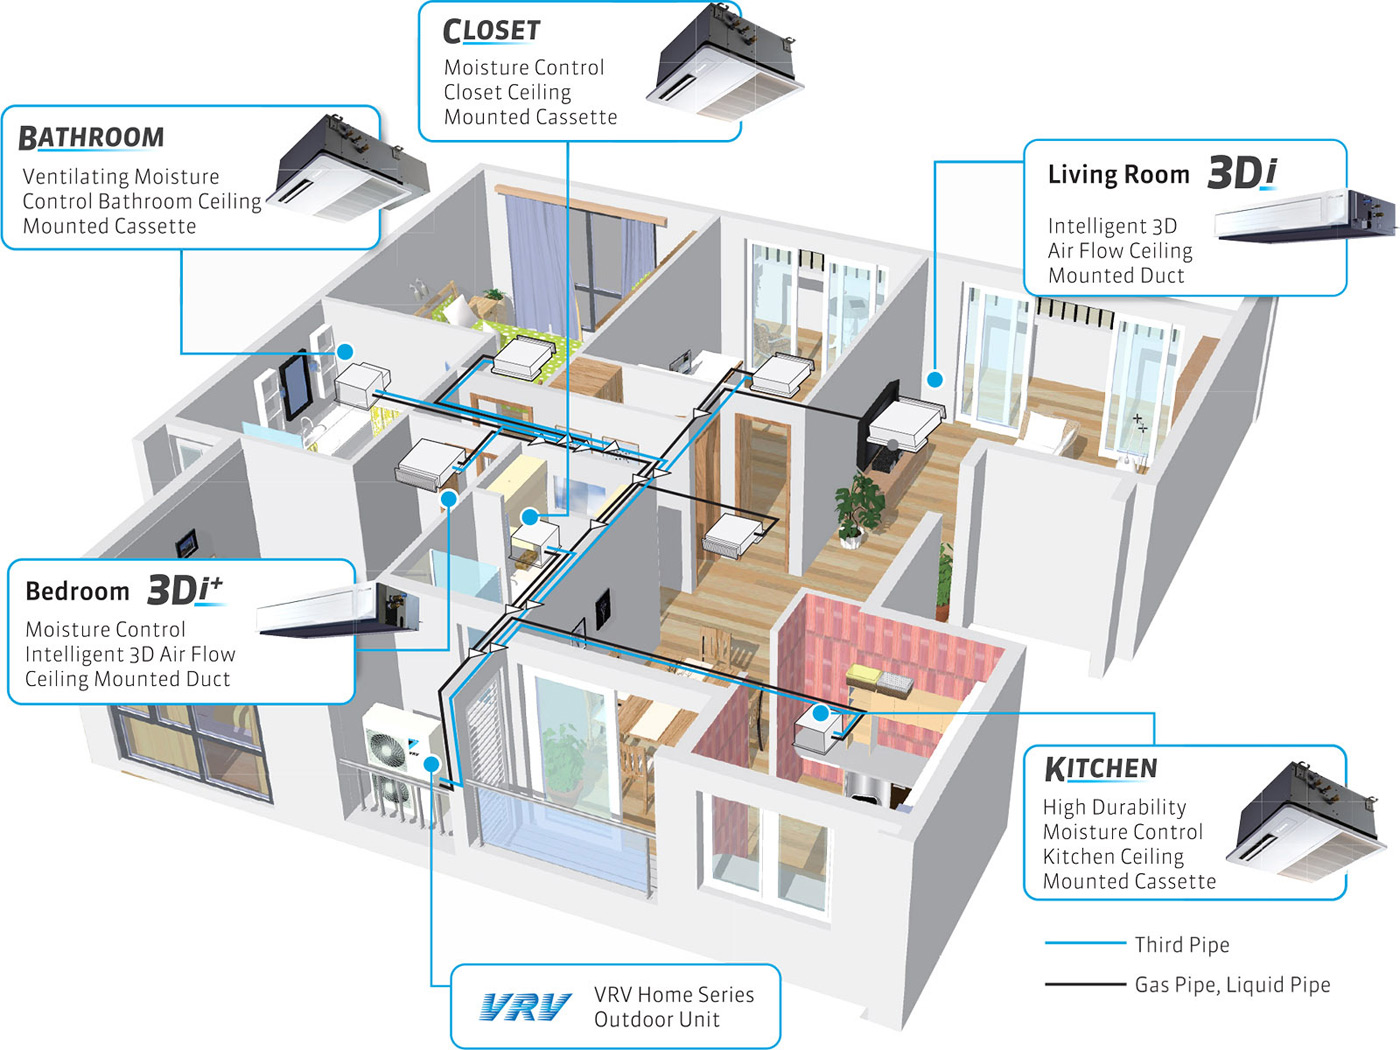 outline daikin vrv wiring diagram gandul 45 77 79 119 Sauermann Si 30 Installation Manual at couponss.co